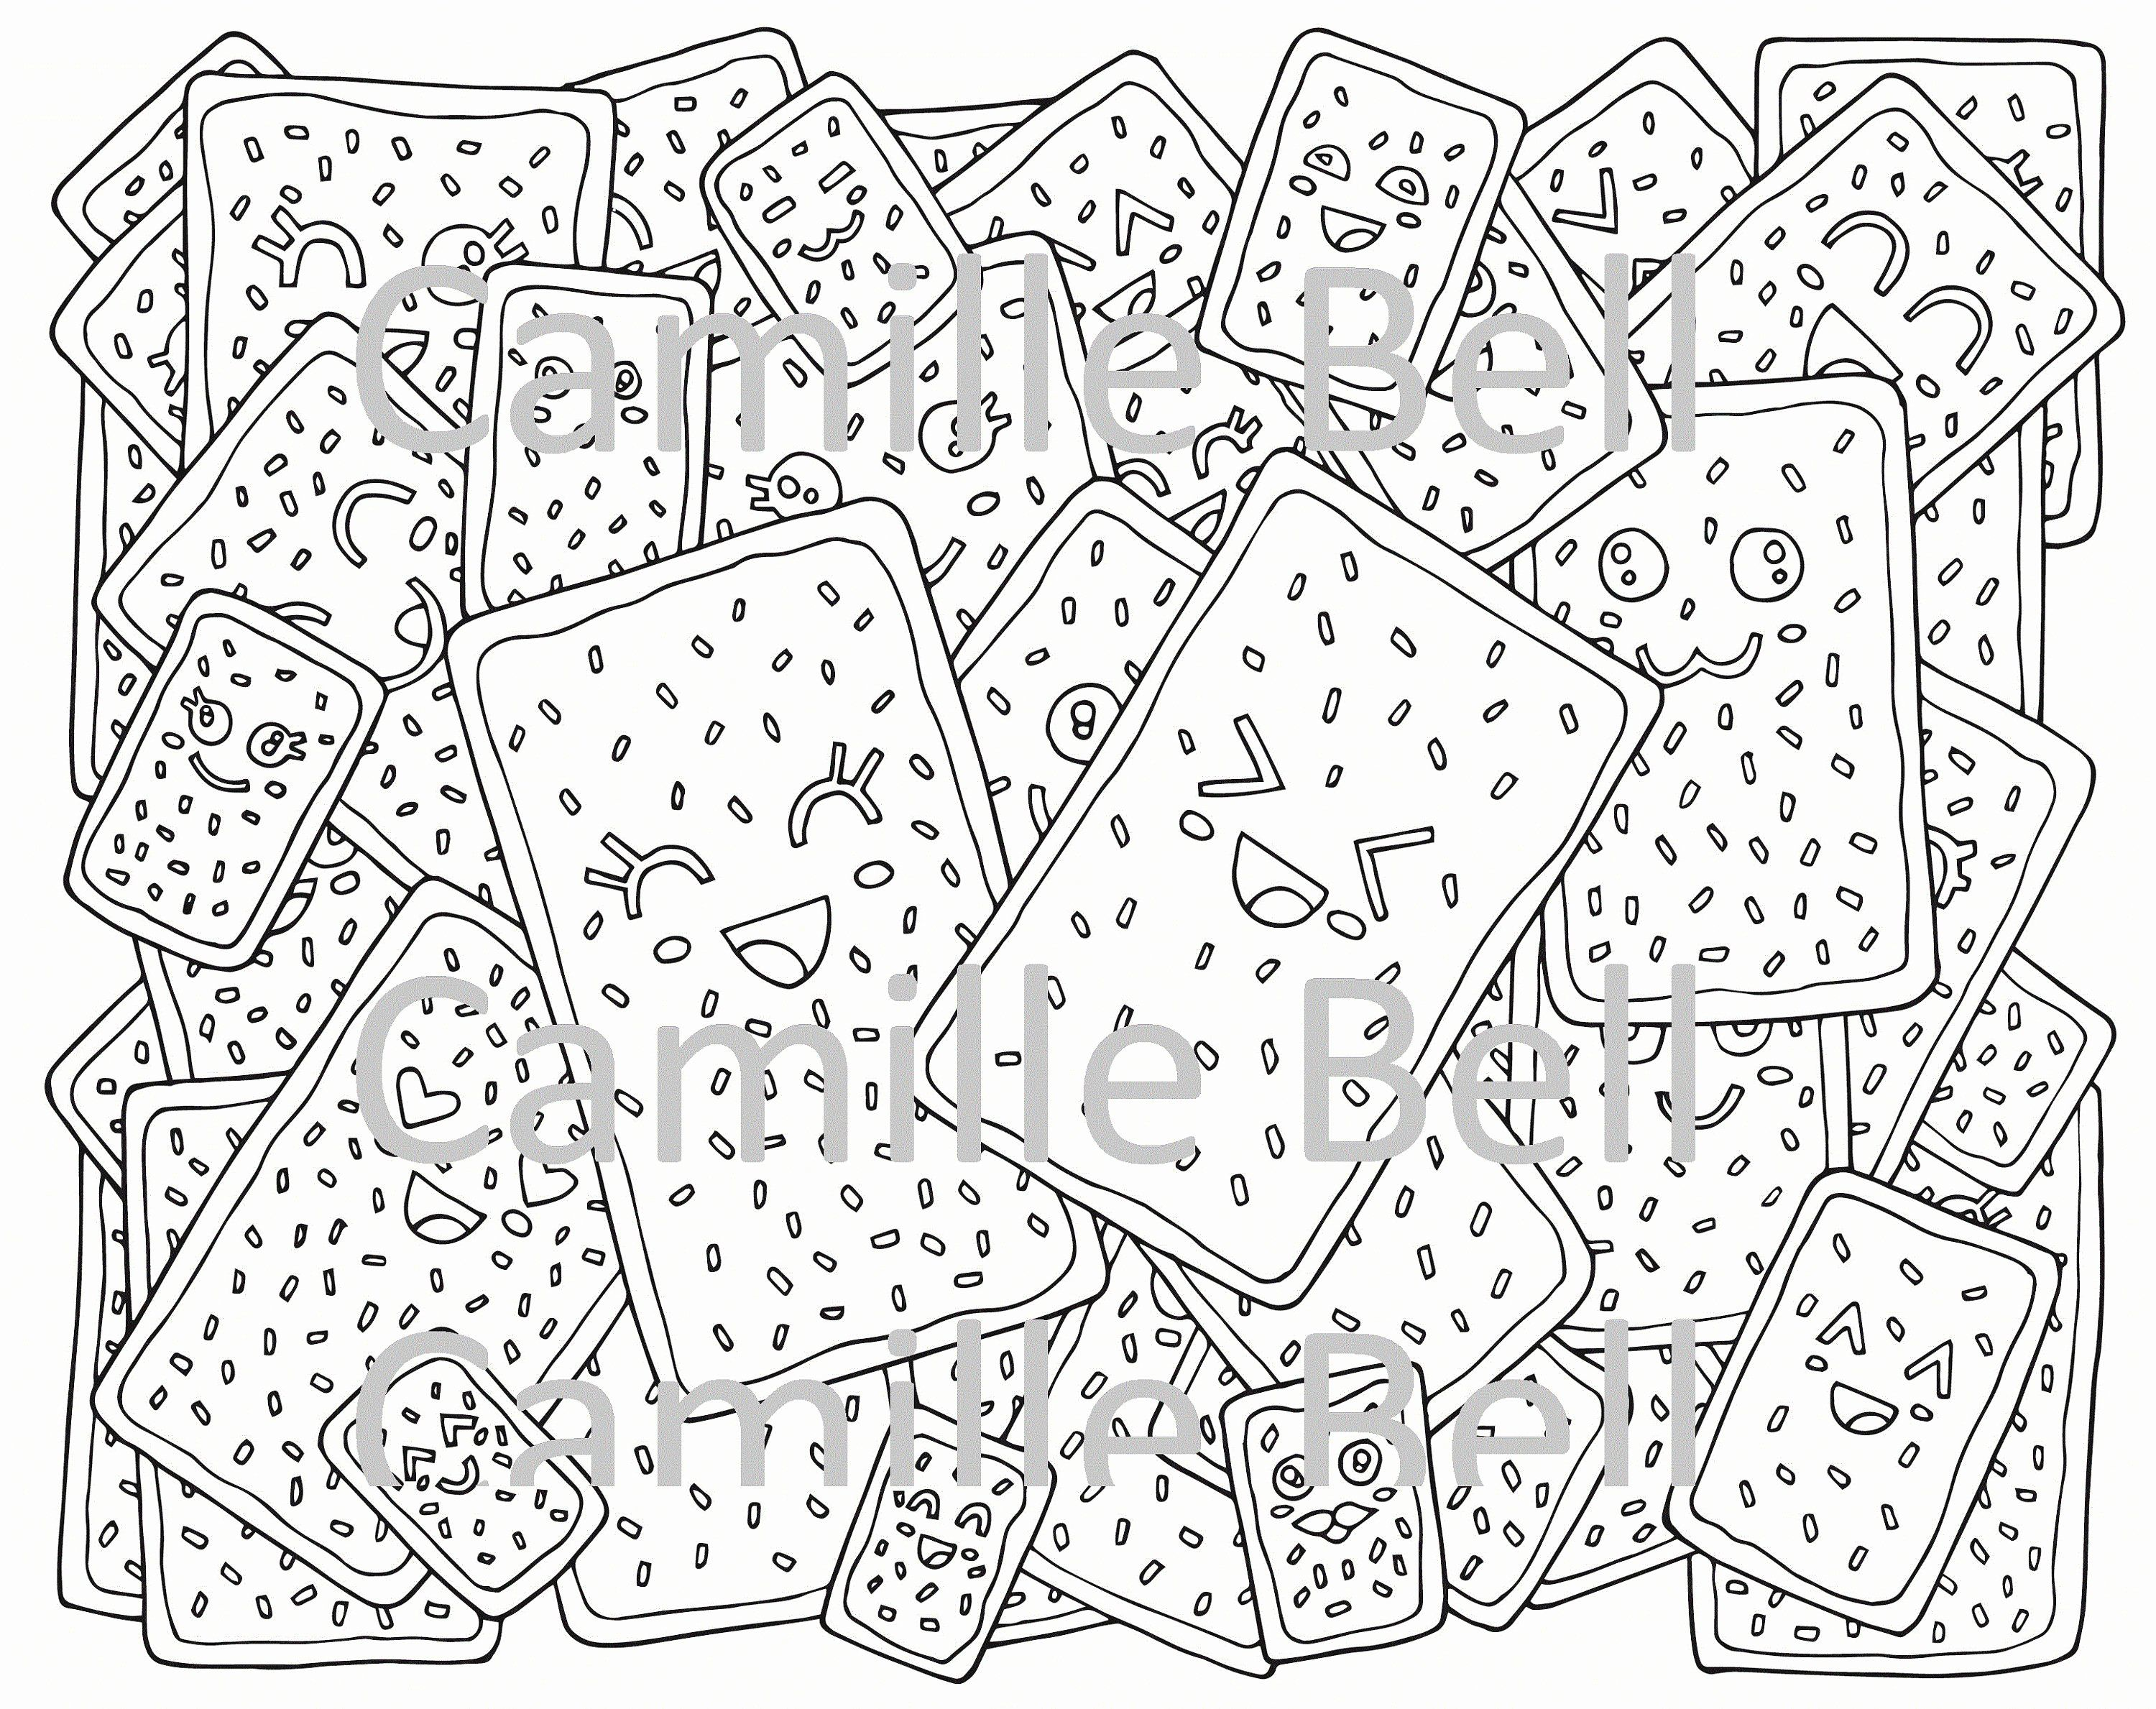 Super Cute Coloring Pages Beautiful Kawaii Pop Tart Coloring Page For Adults Super Cute Food Download Cute Coloring Pages Coloring Pages Monster Coloring Pages